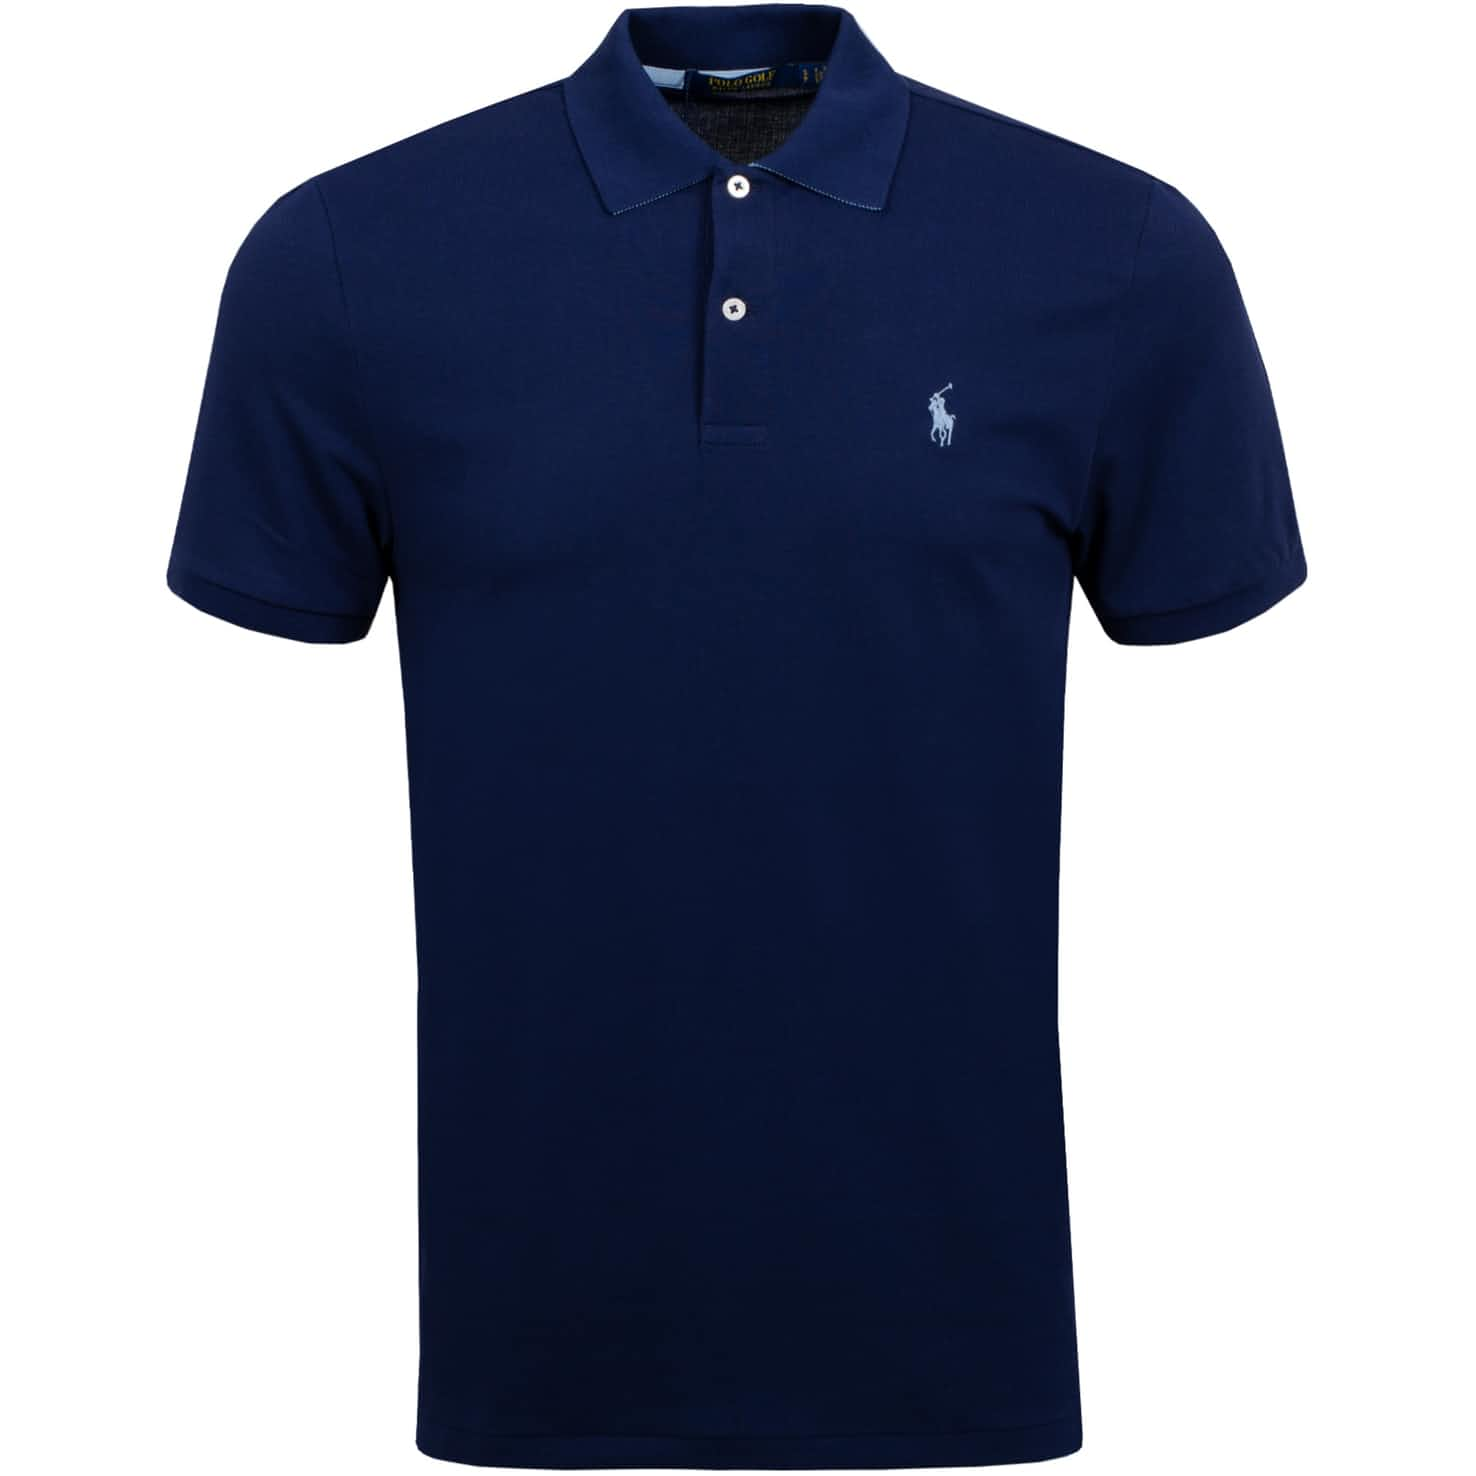 Lightweight Performance Pique French Navy - SS20